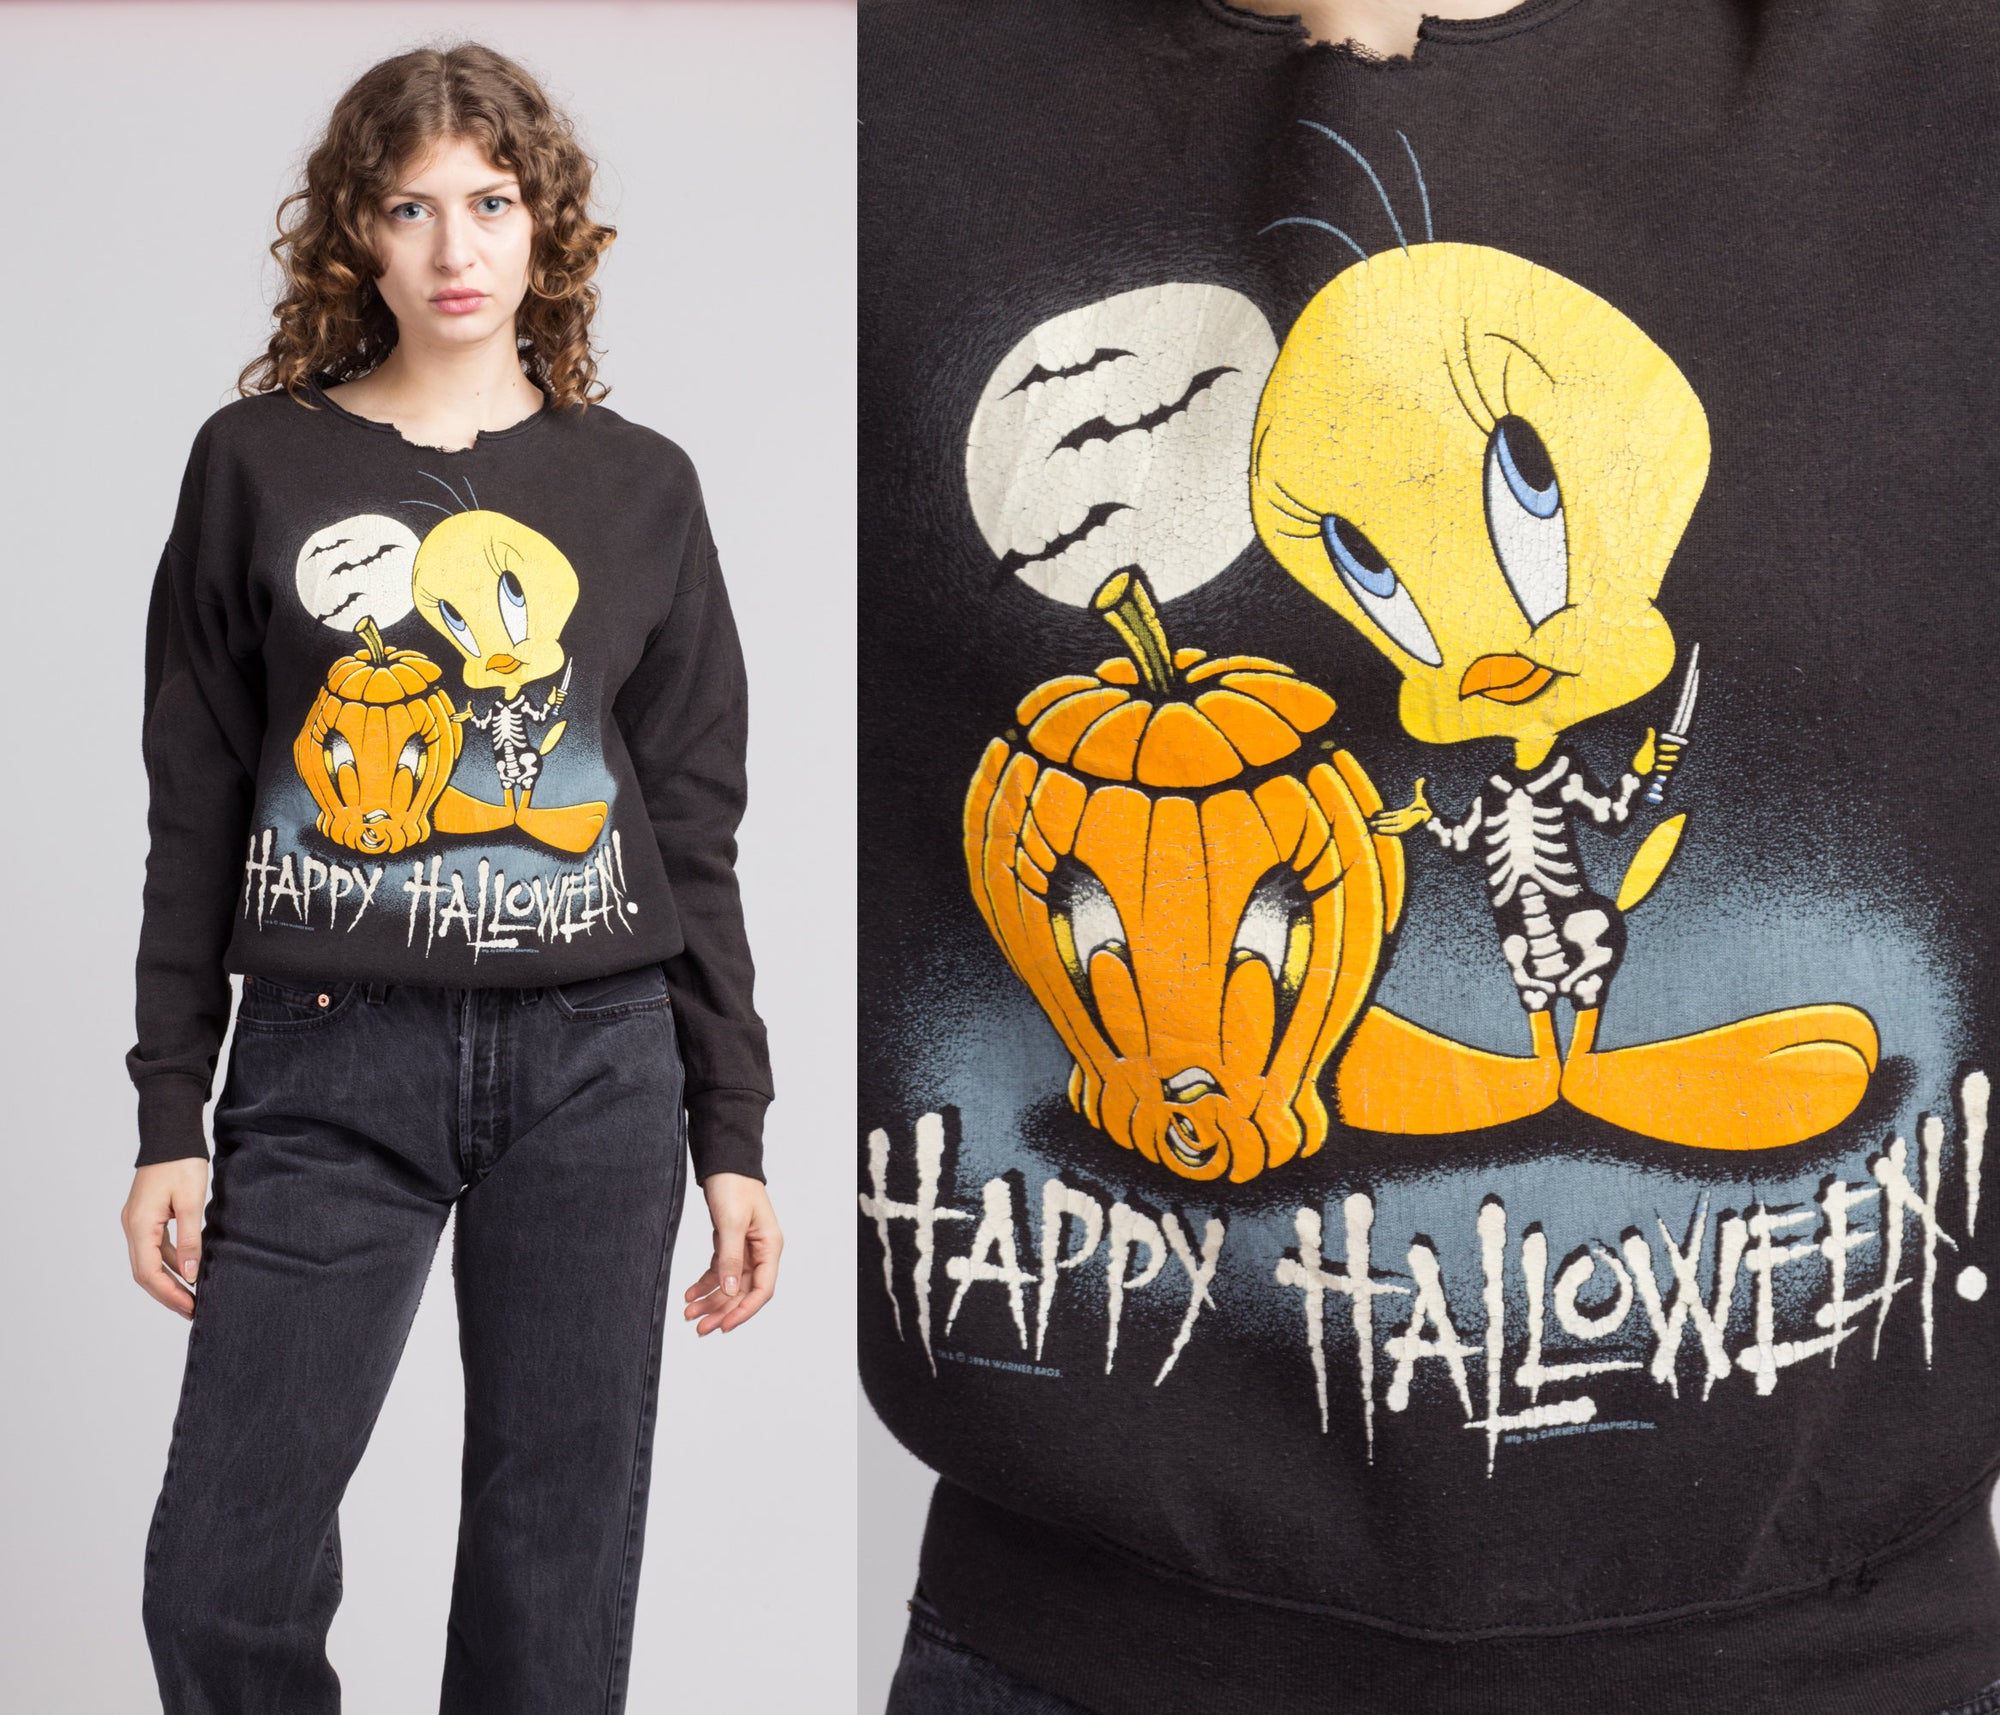 90s Tweety Bird Halloween Sweatshirt - Medium